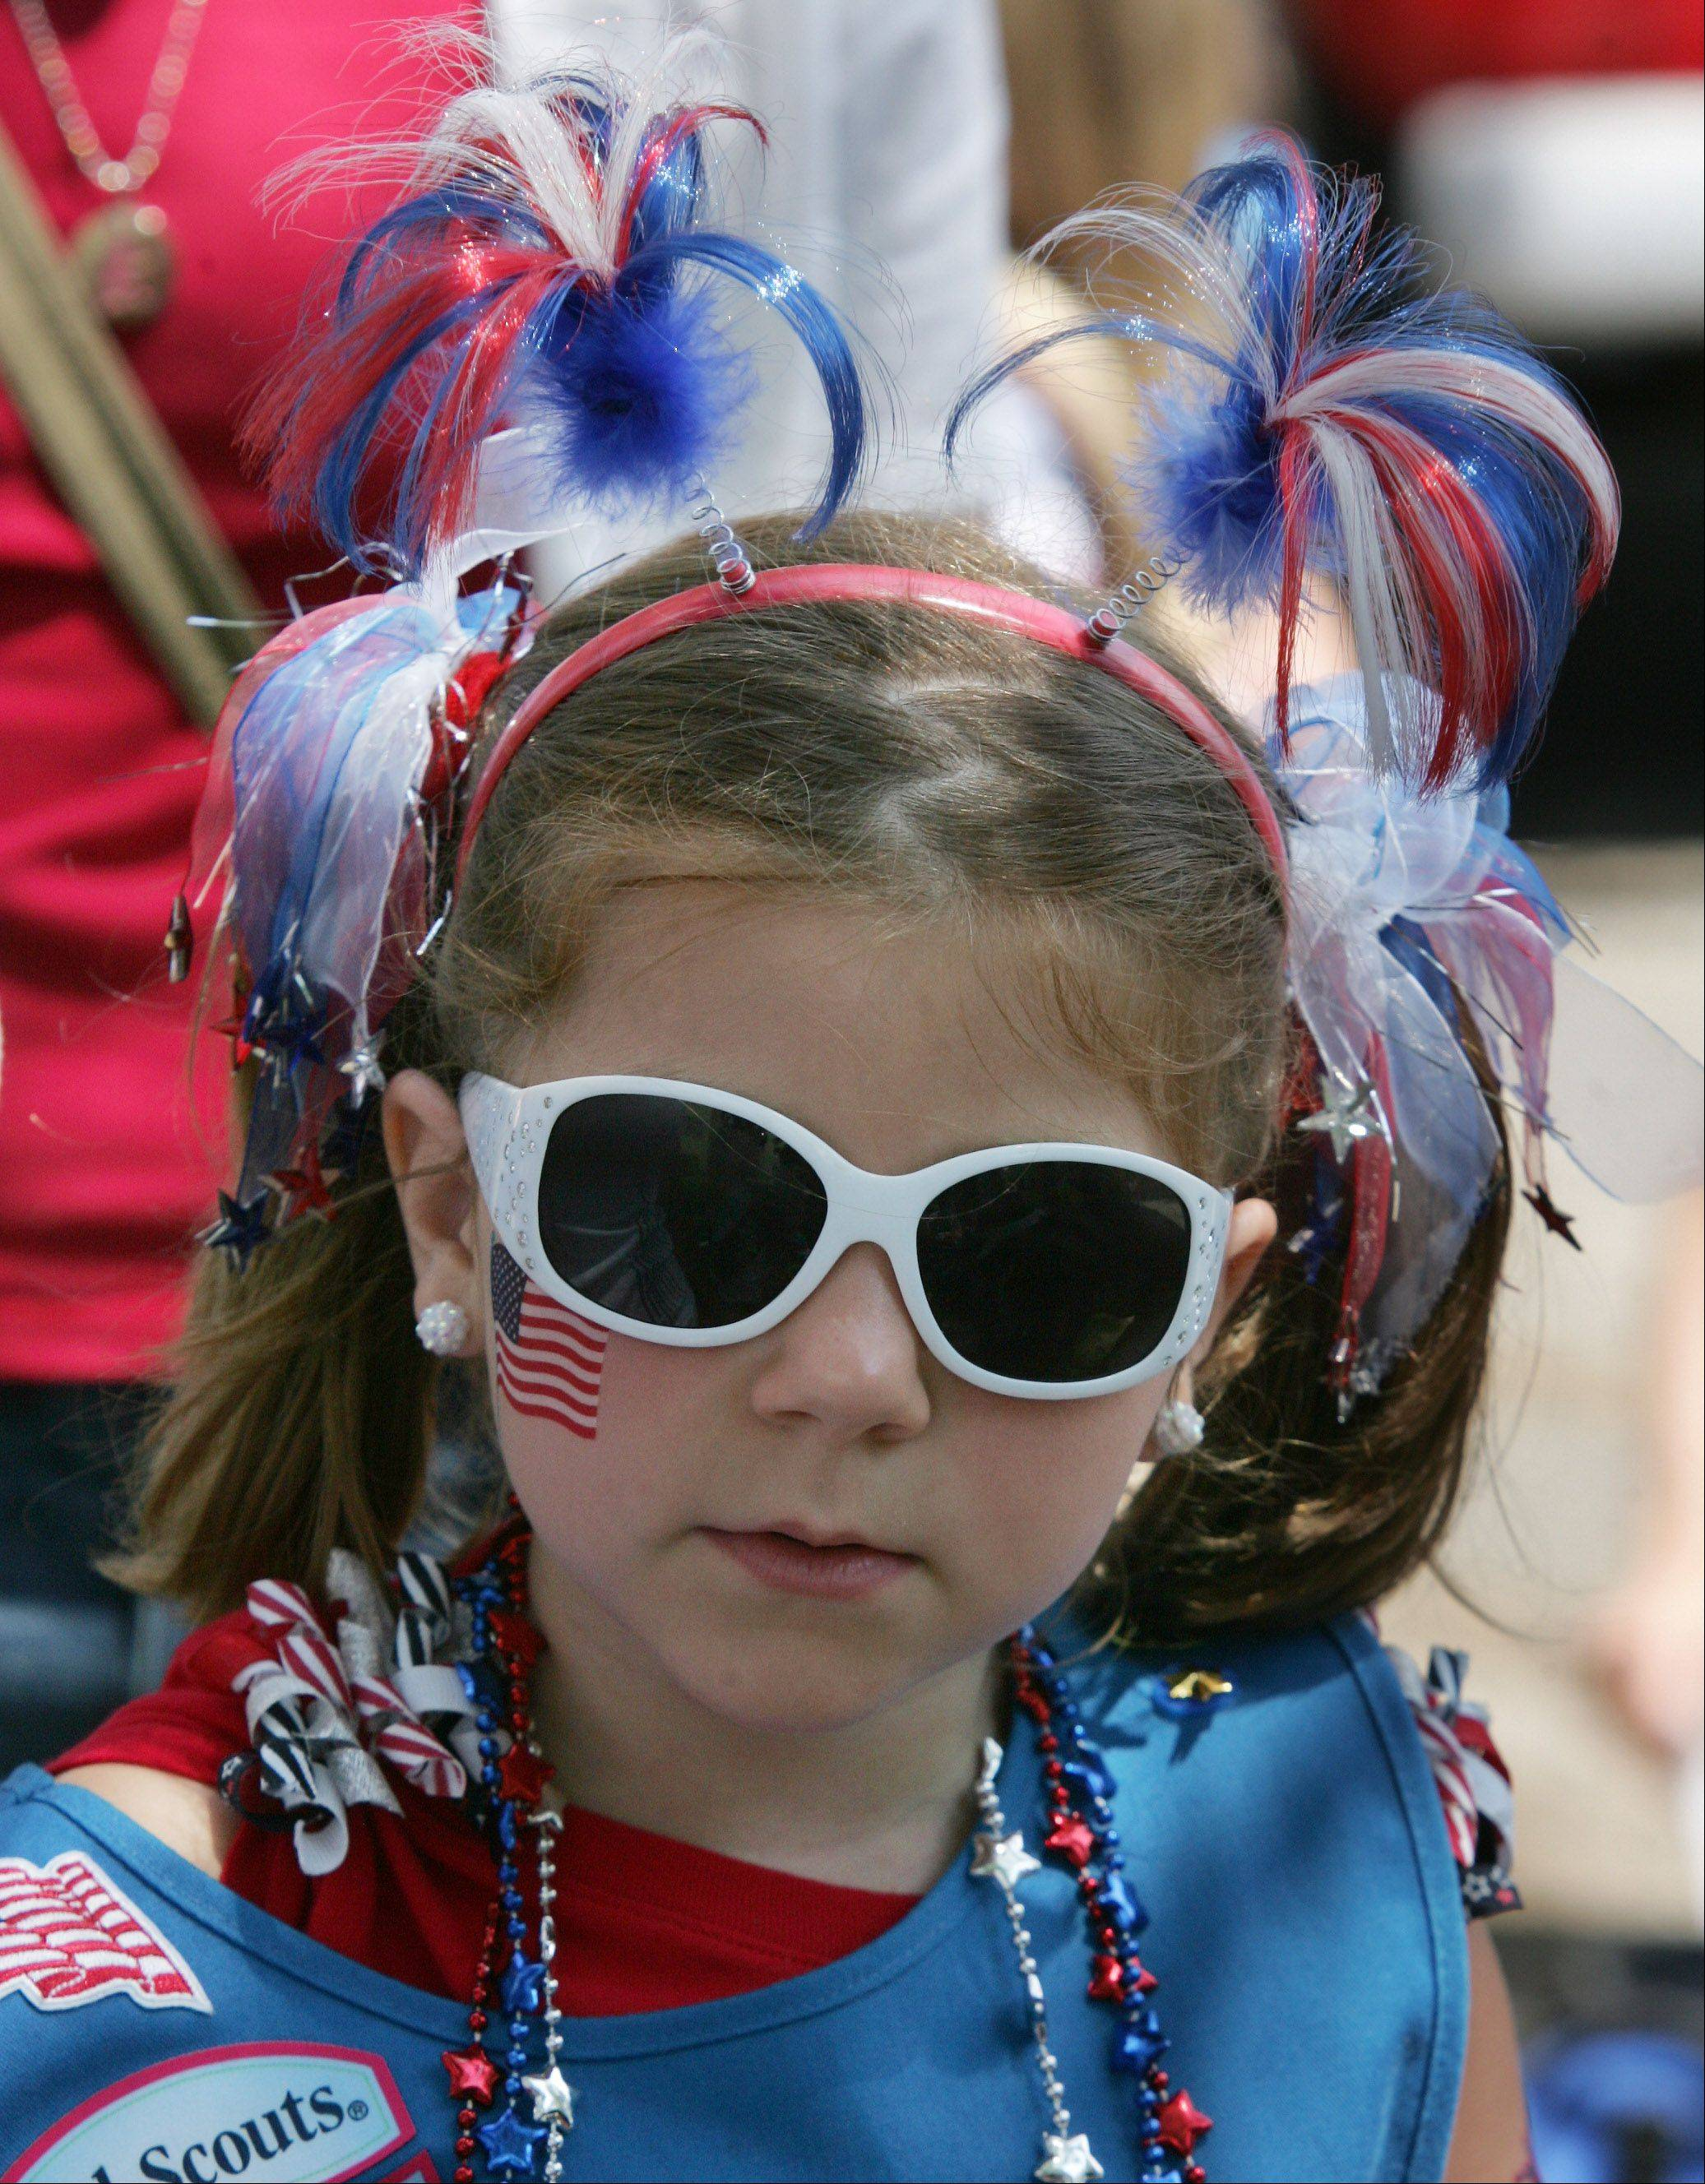 Girl Scout Kaelyn Pearson, 6, of Troop 40150 in Mundelein is decorated for the holiday during the Mundelein Community Days Parade Sunday as it makes its way along Hawley Street.